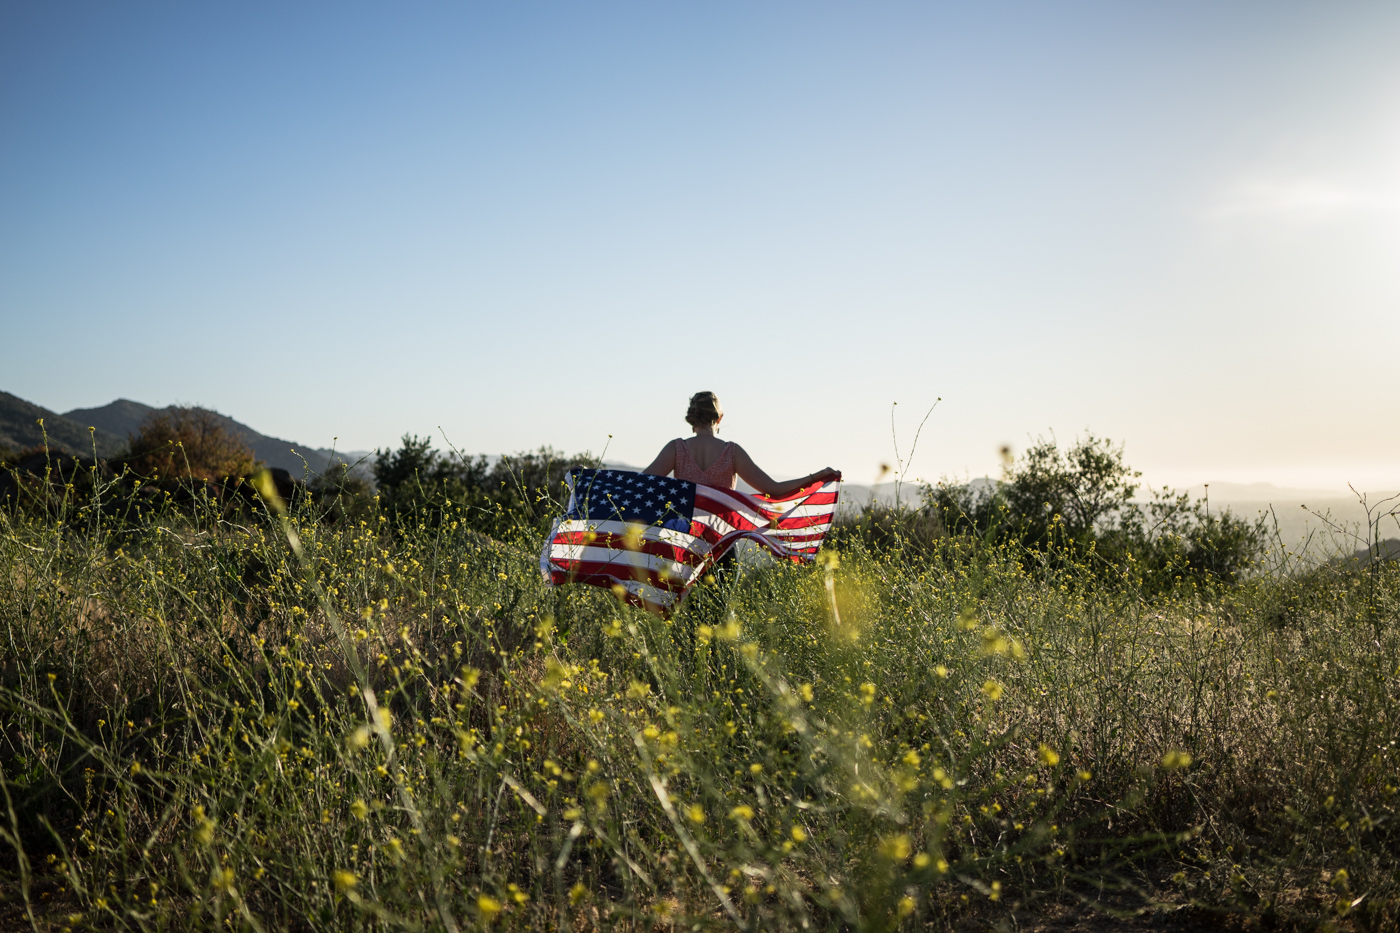 American woman with waving flag portrait in grassy wildflower meadow landscape at sunset